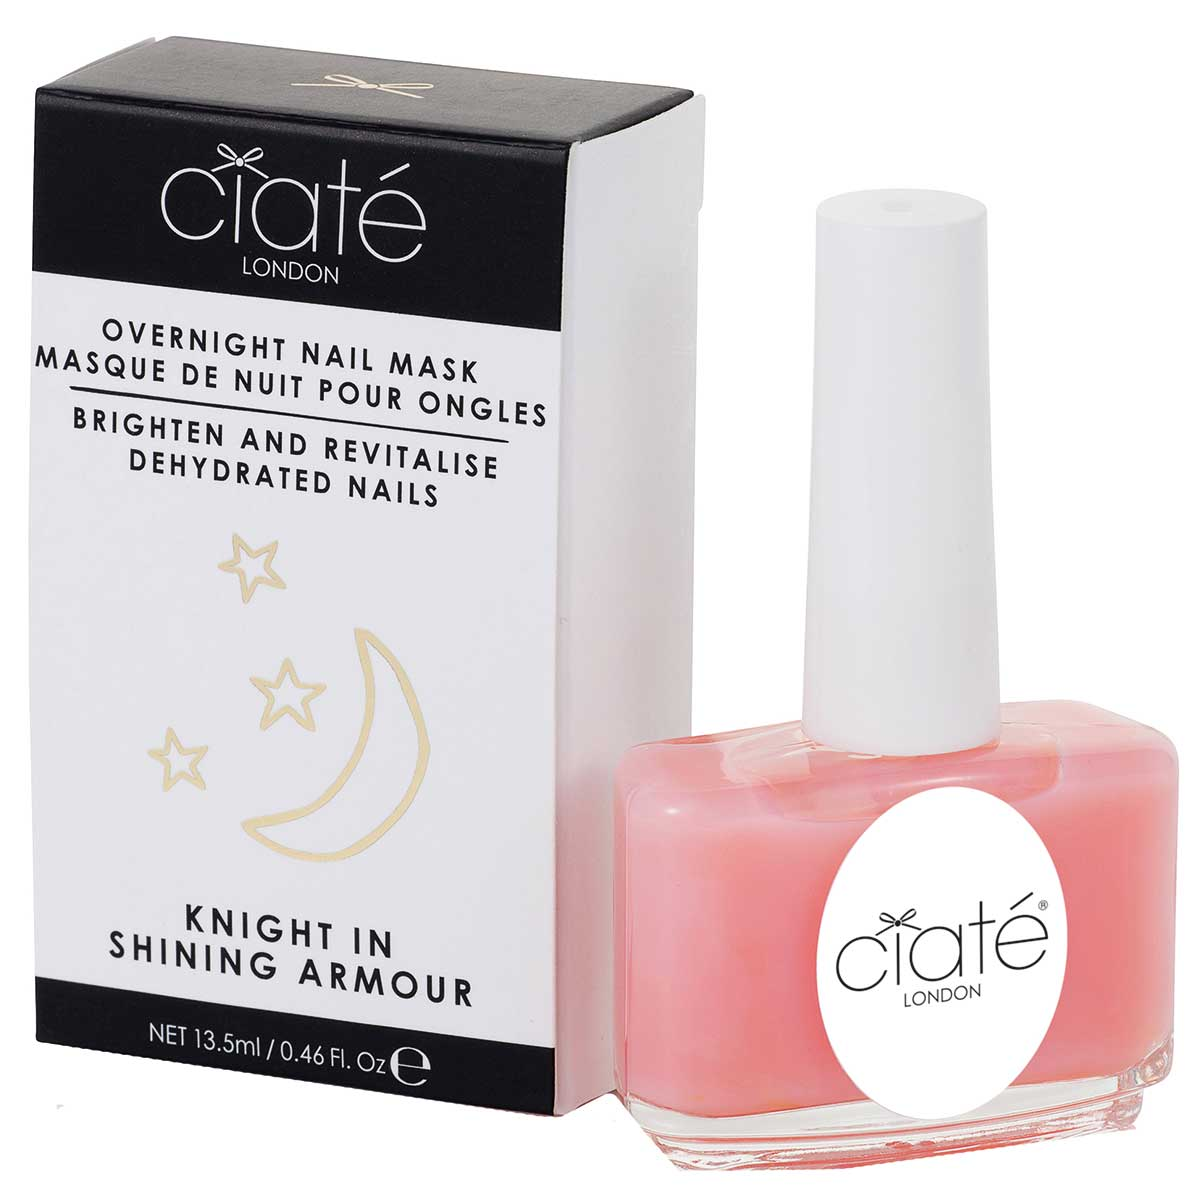 Ciaté Knight in Shining Armour Overnight Nail Mask